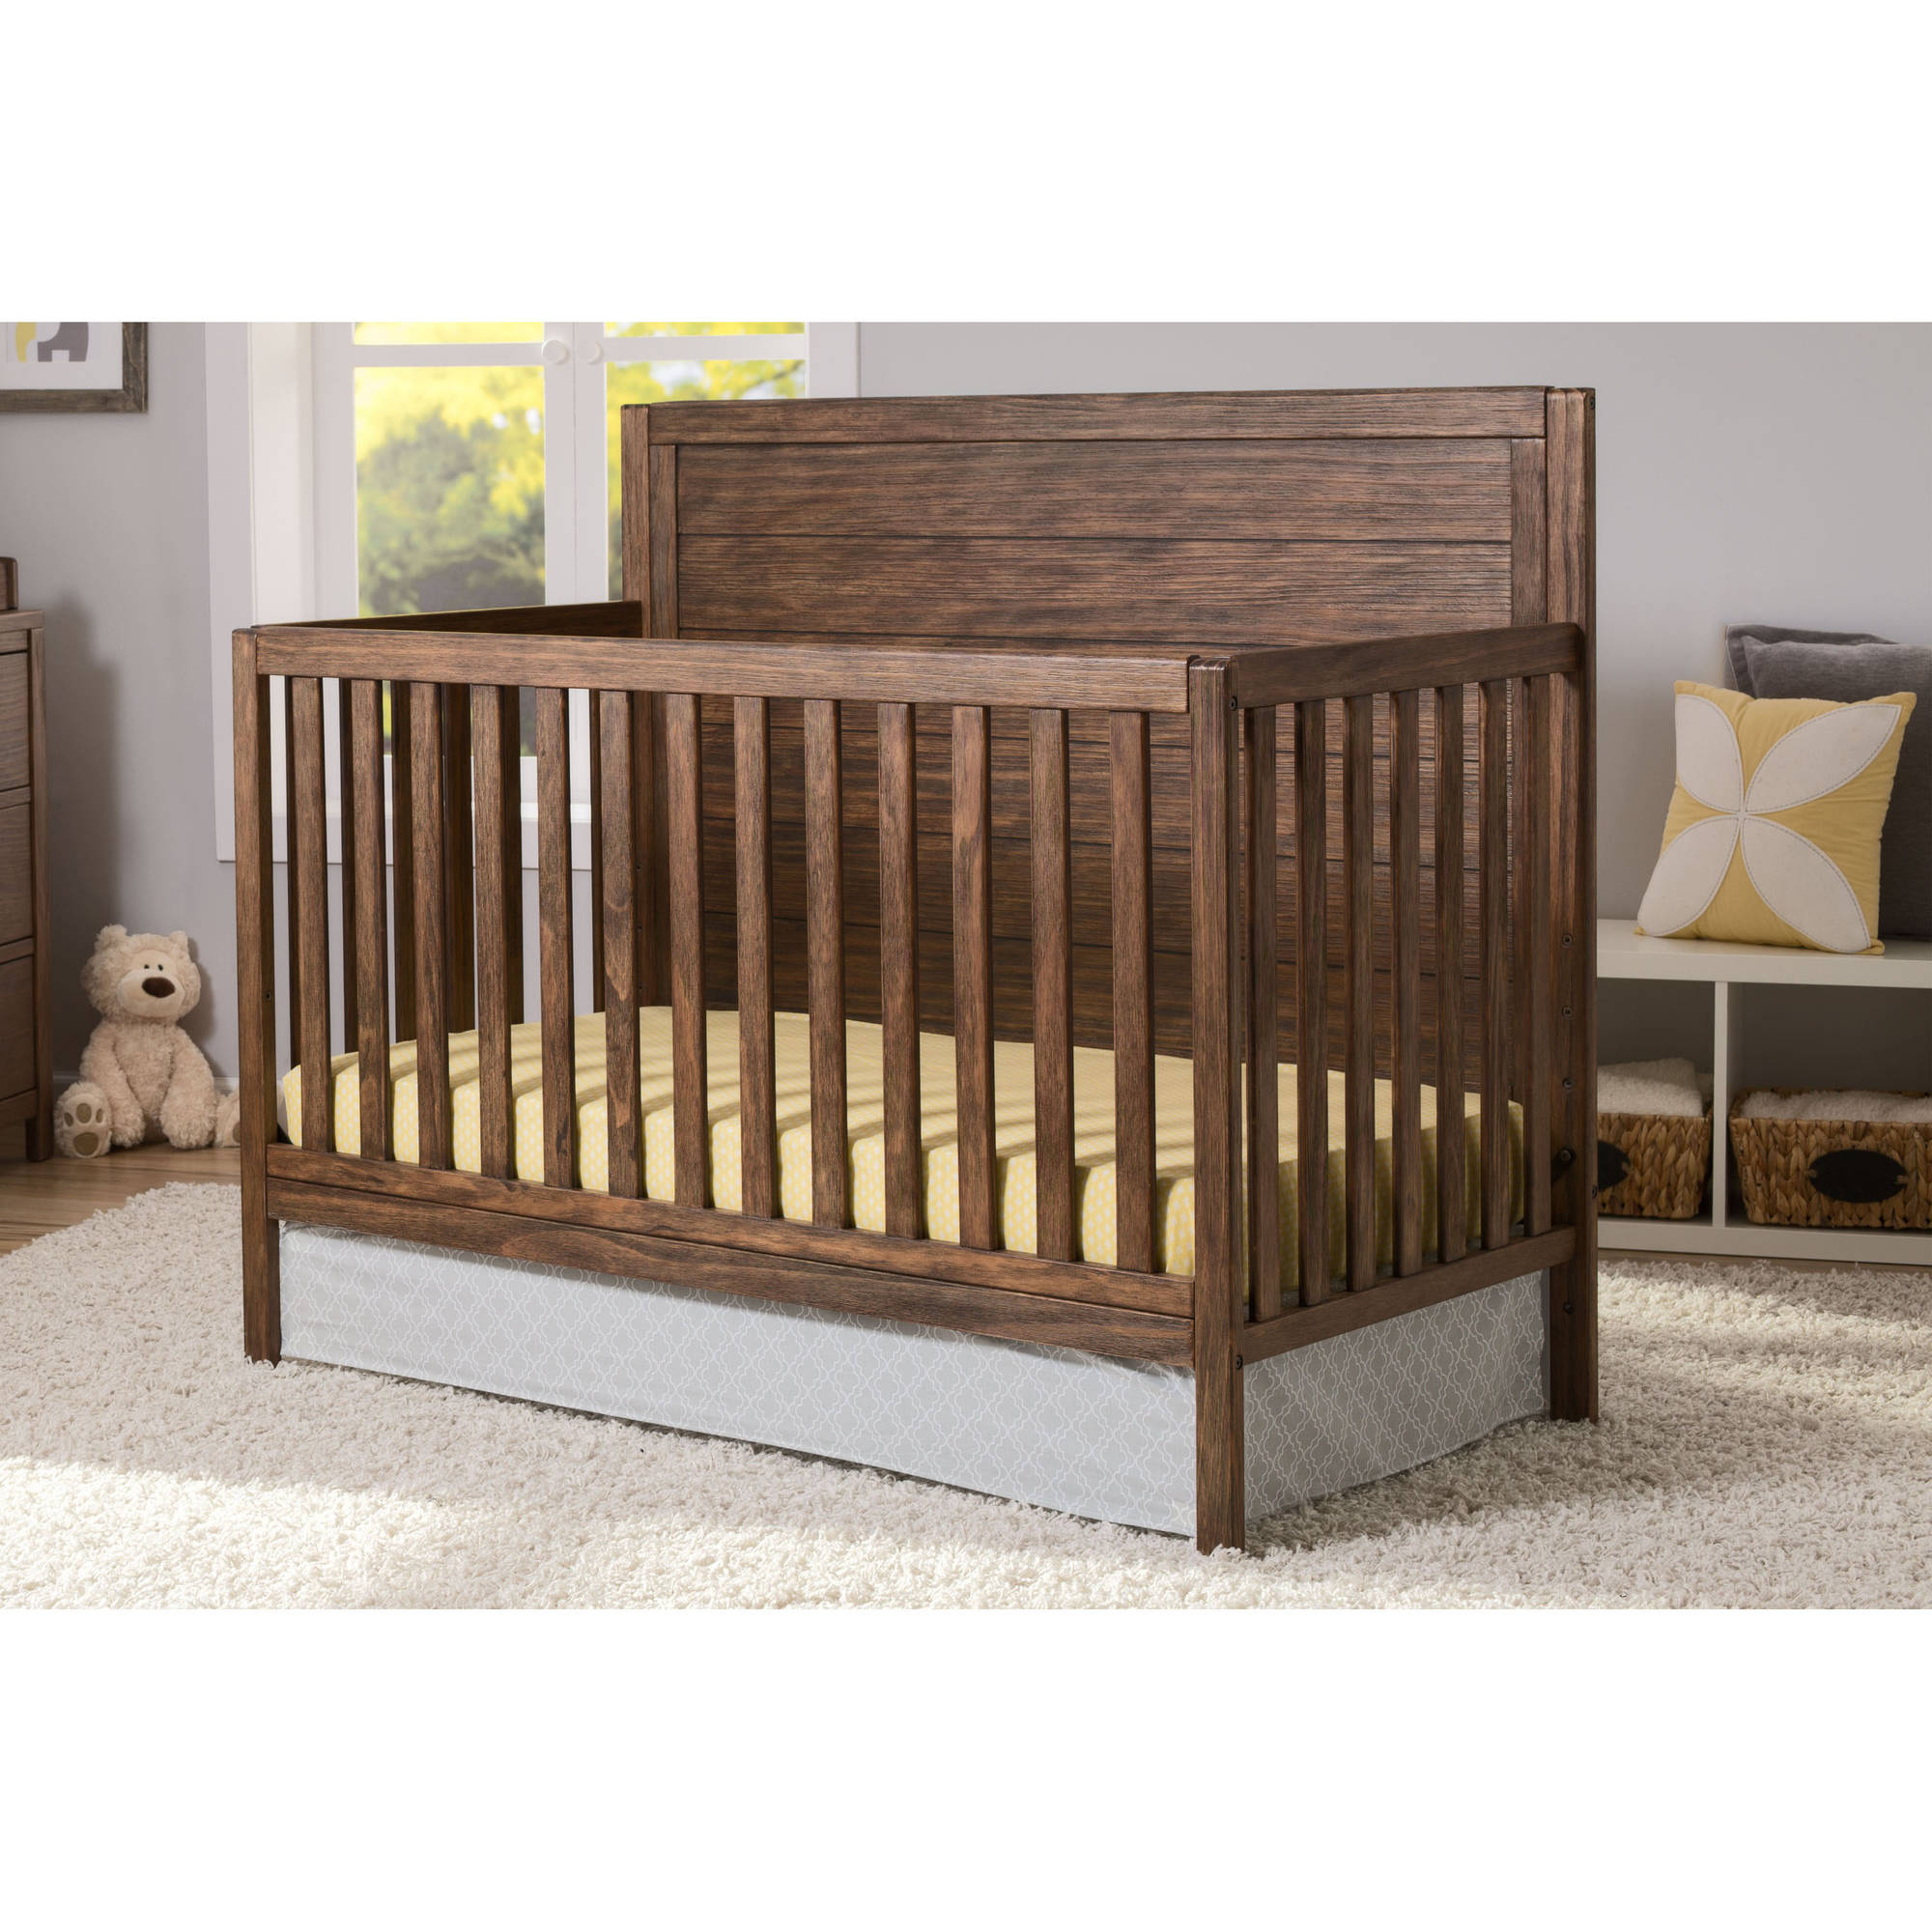 Delta Children Cambridge 4-in-1 Convertible Crib, (Choose Your Finish)